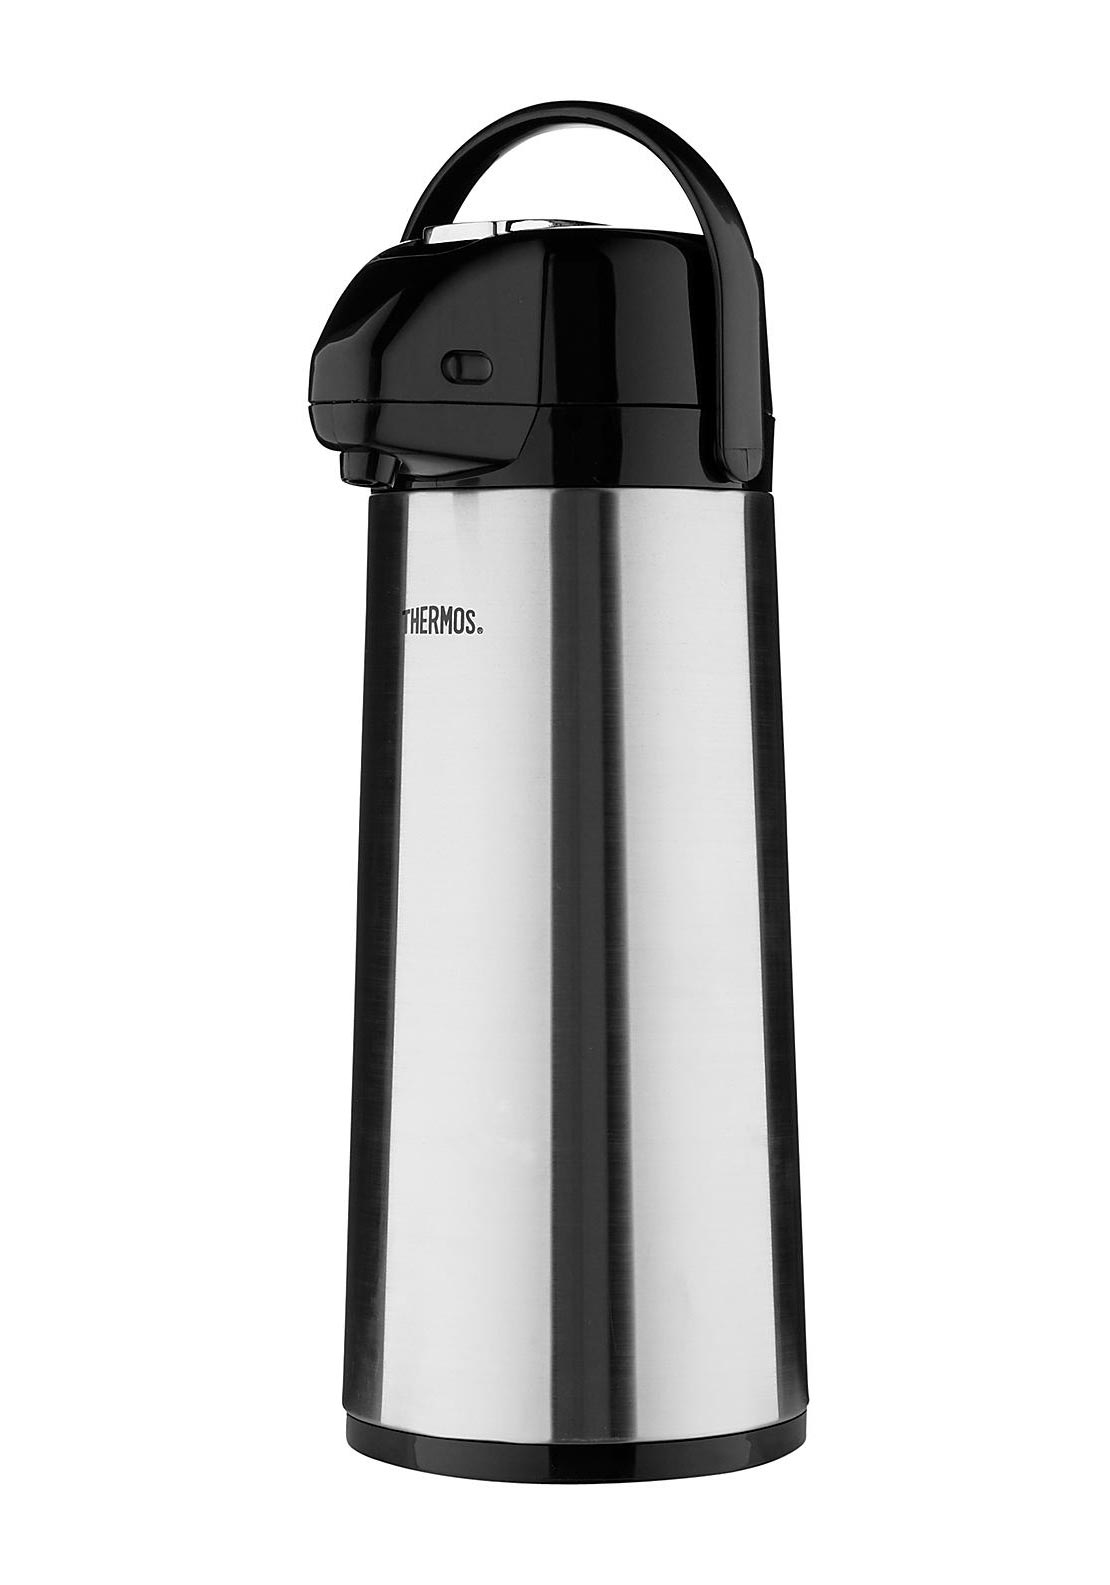 Genuine Thermos Brand Vacuum Insulated Glass Double Wall 2.5L Pump Pot